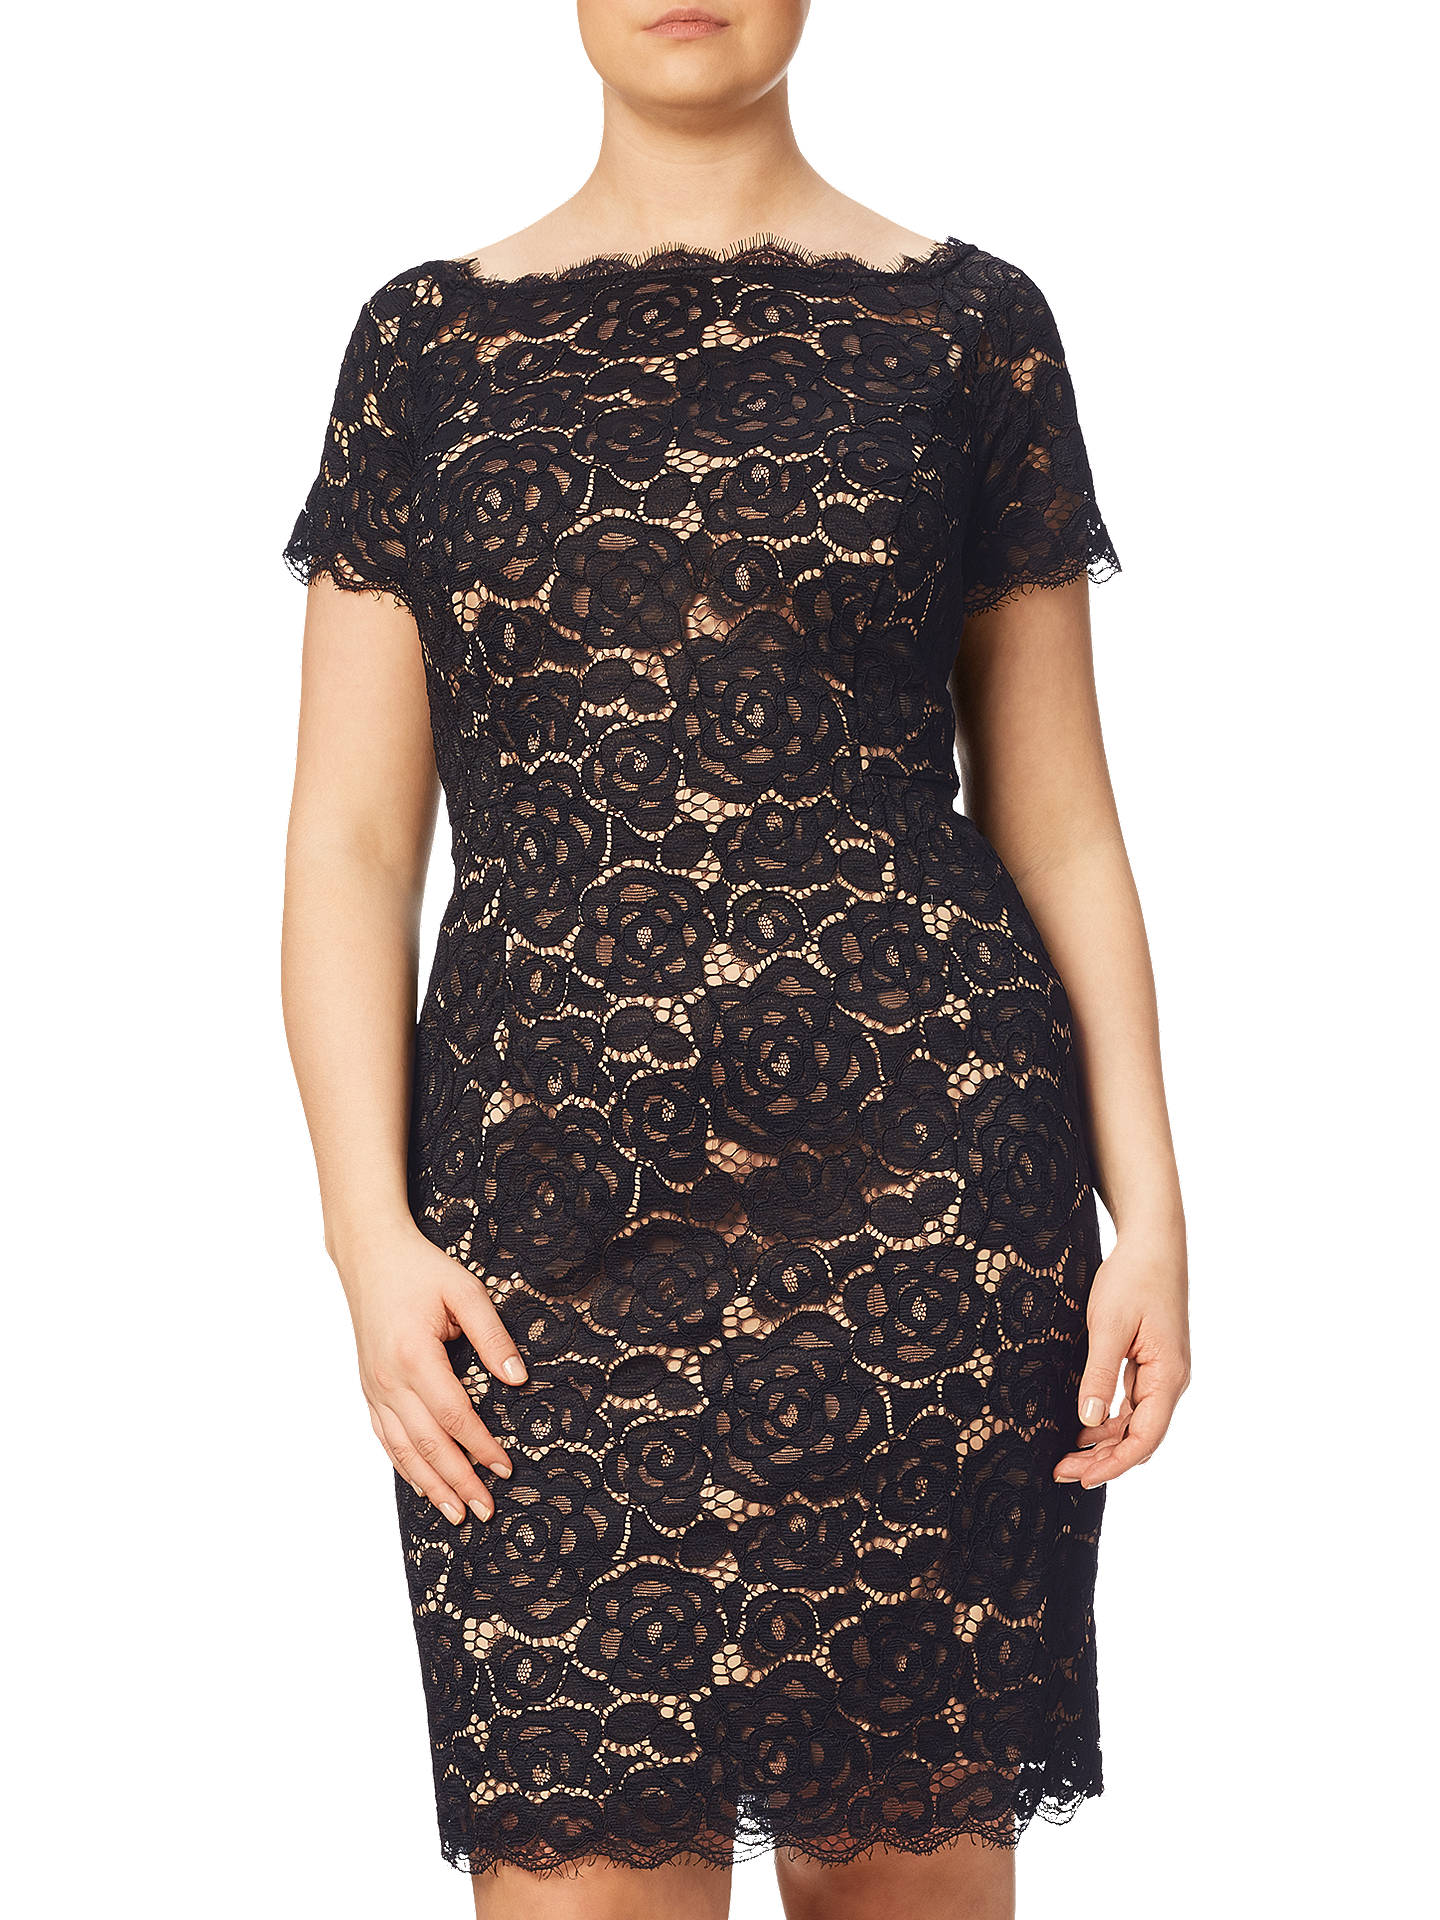 4e56bcfb Buy Adrianna Papell Plus Size Off Shoulder Lace Sheath Dress, Black, 20  Online at ...